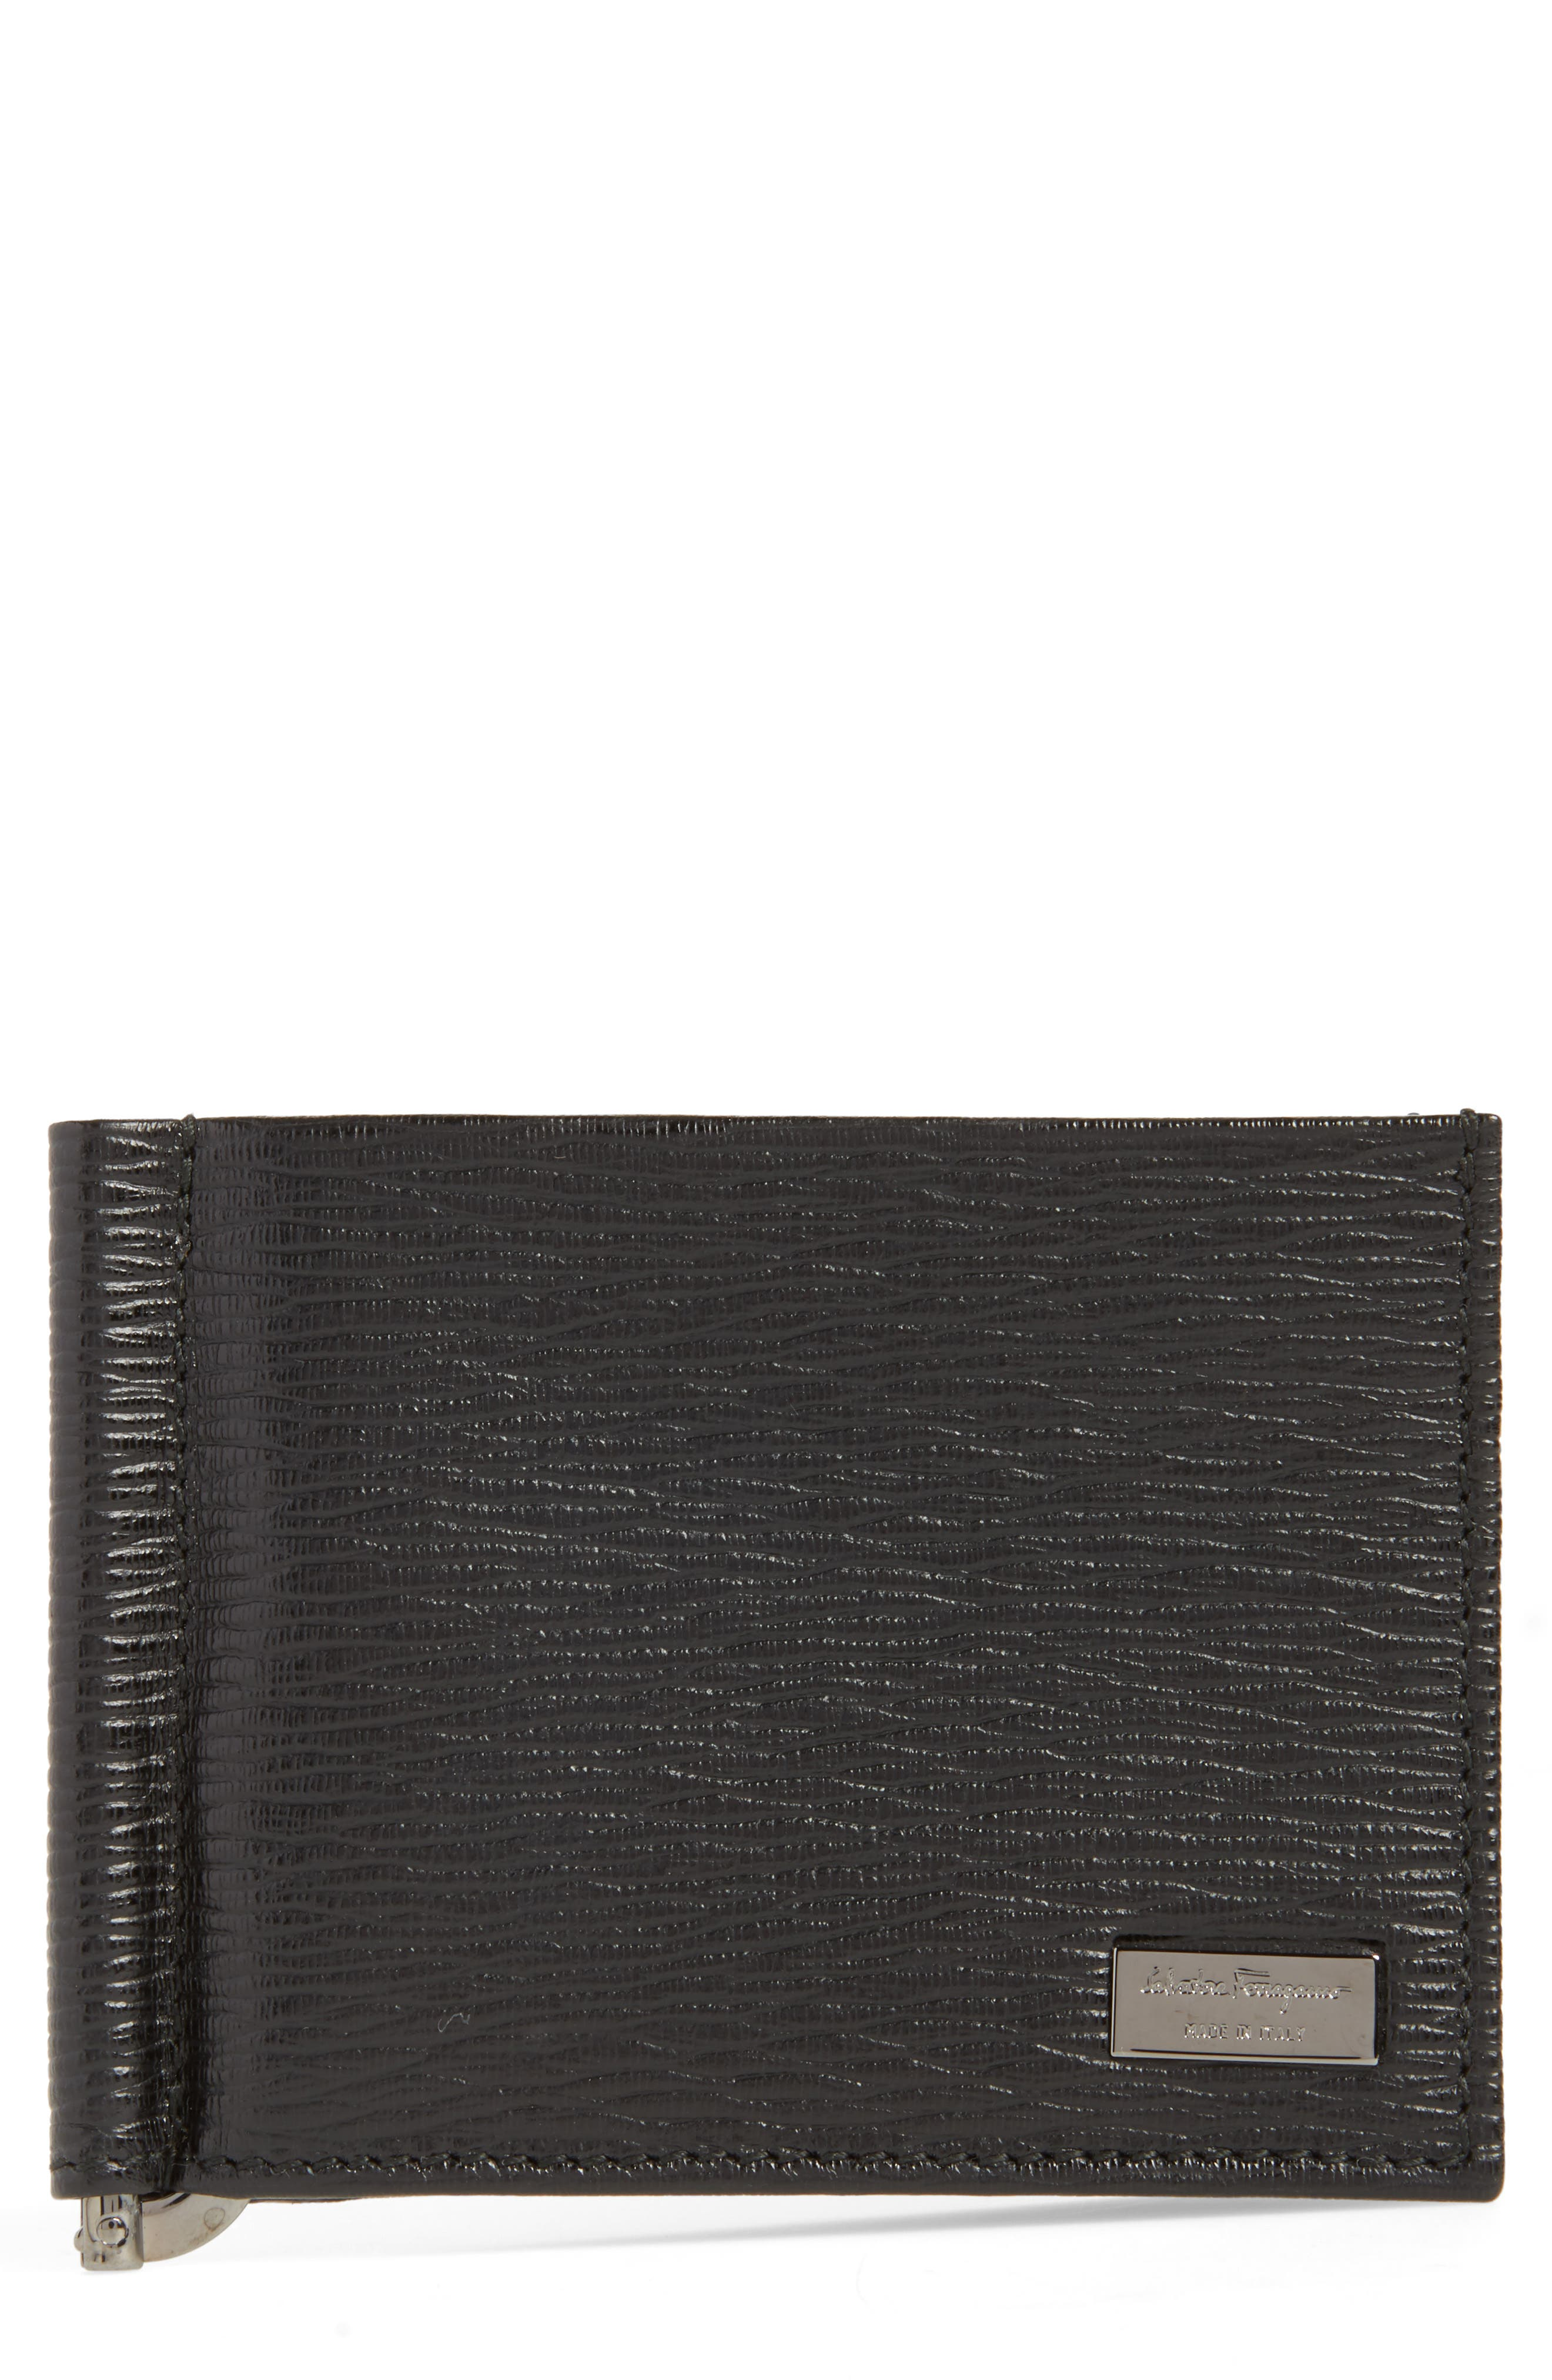 Revival Bifold Leather Wallet,                             Main thumbnail 1, color,                             NERO